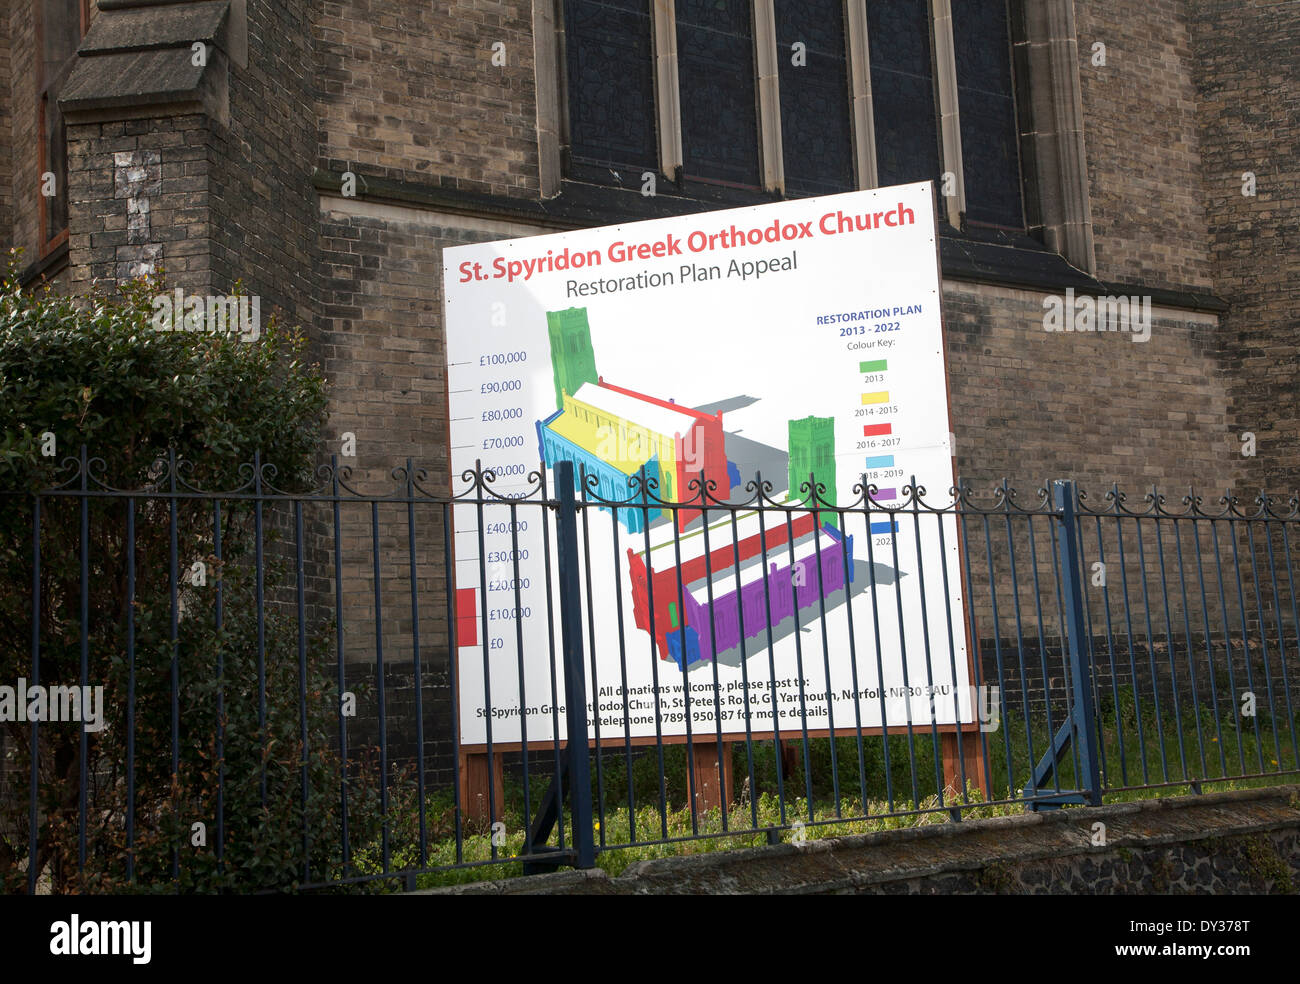 Restoration Plan Appeal sign for St Spyridon Greek Orthodox church, Great Yarmouth, Norfolk, England - Stock Image